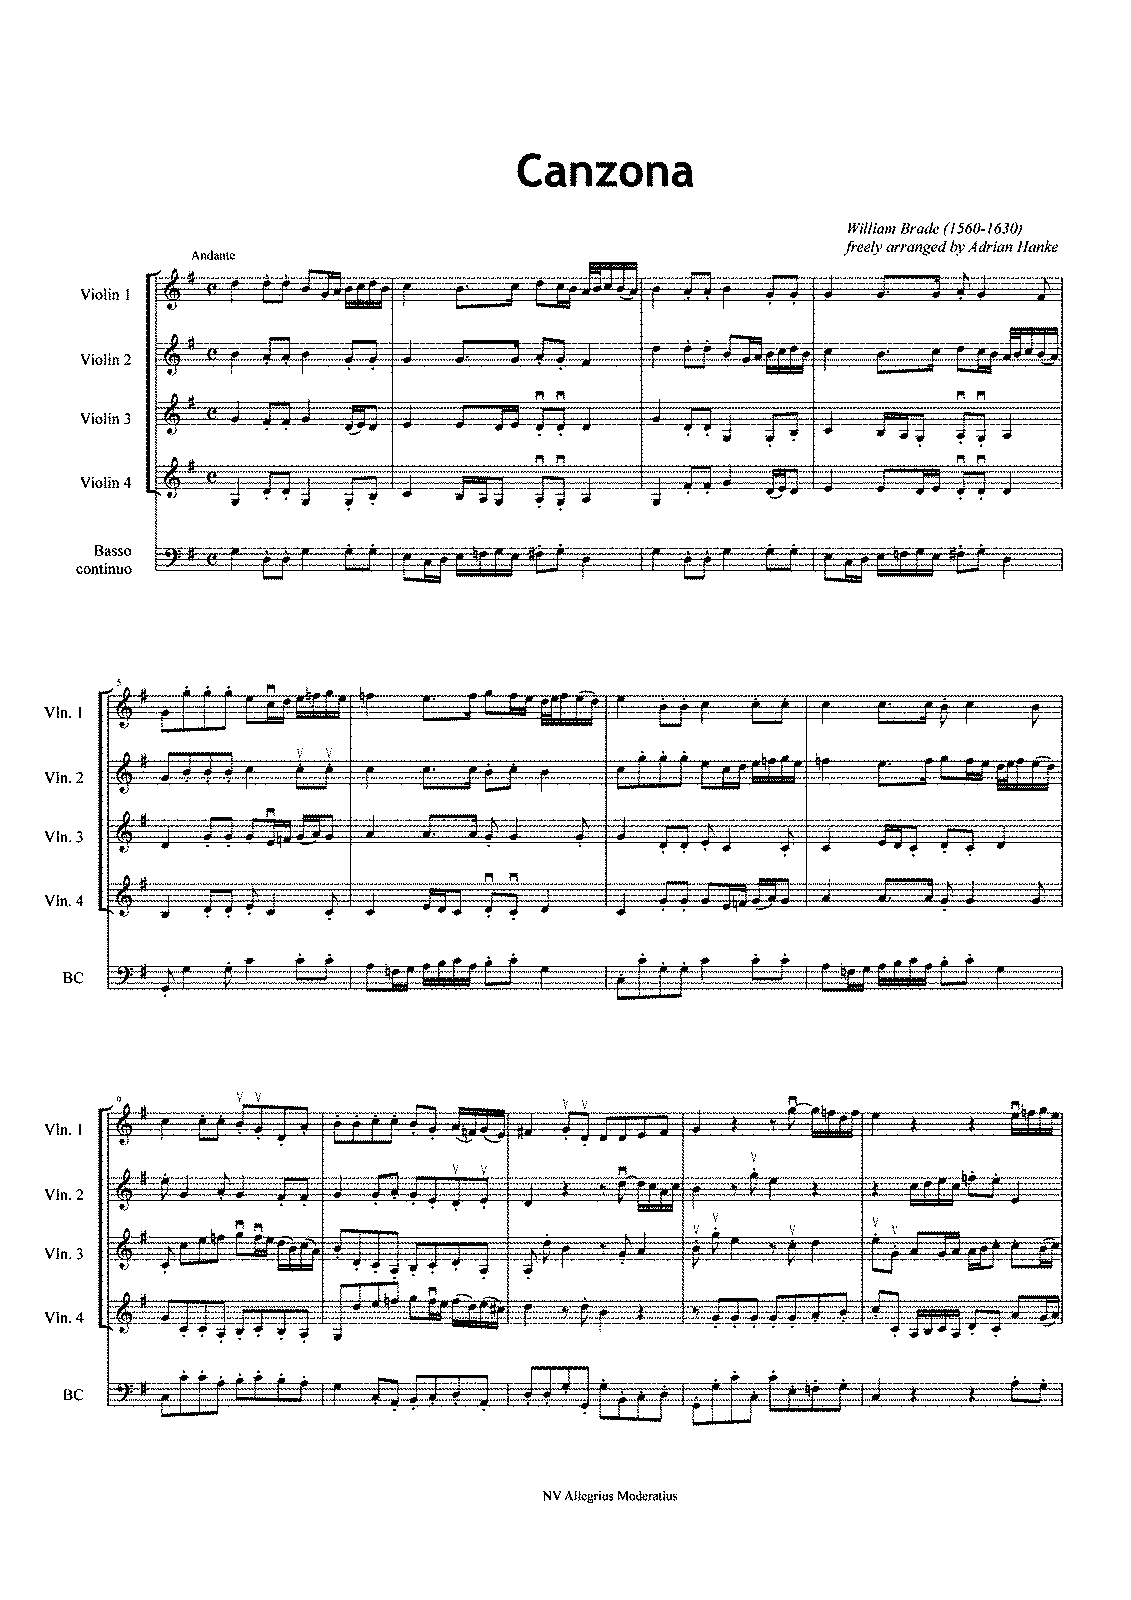 PMLP431841-Brade William - Canzona -16 - Score.pdf